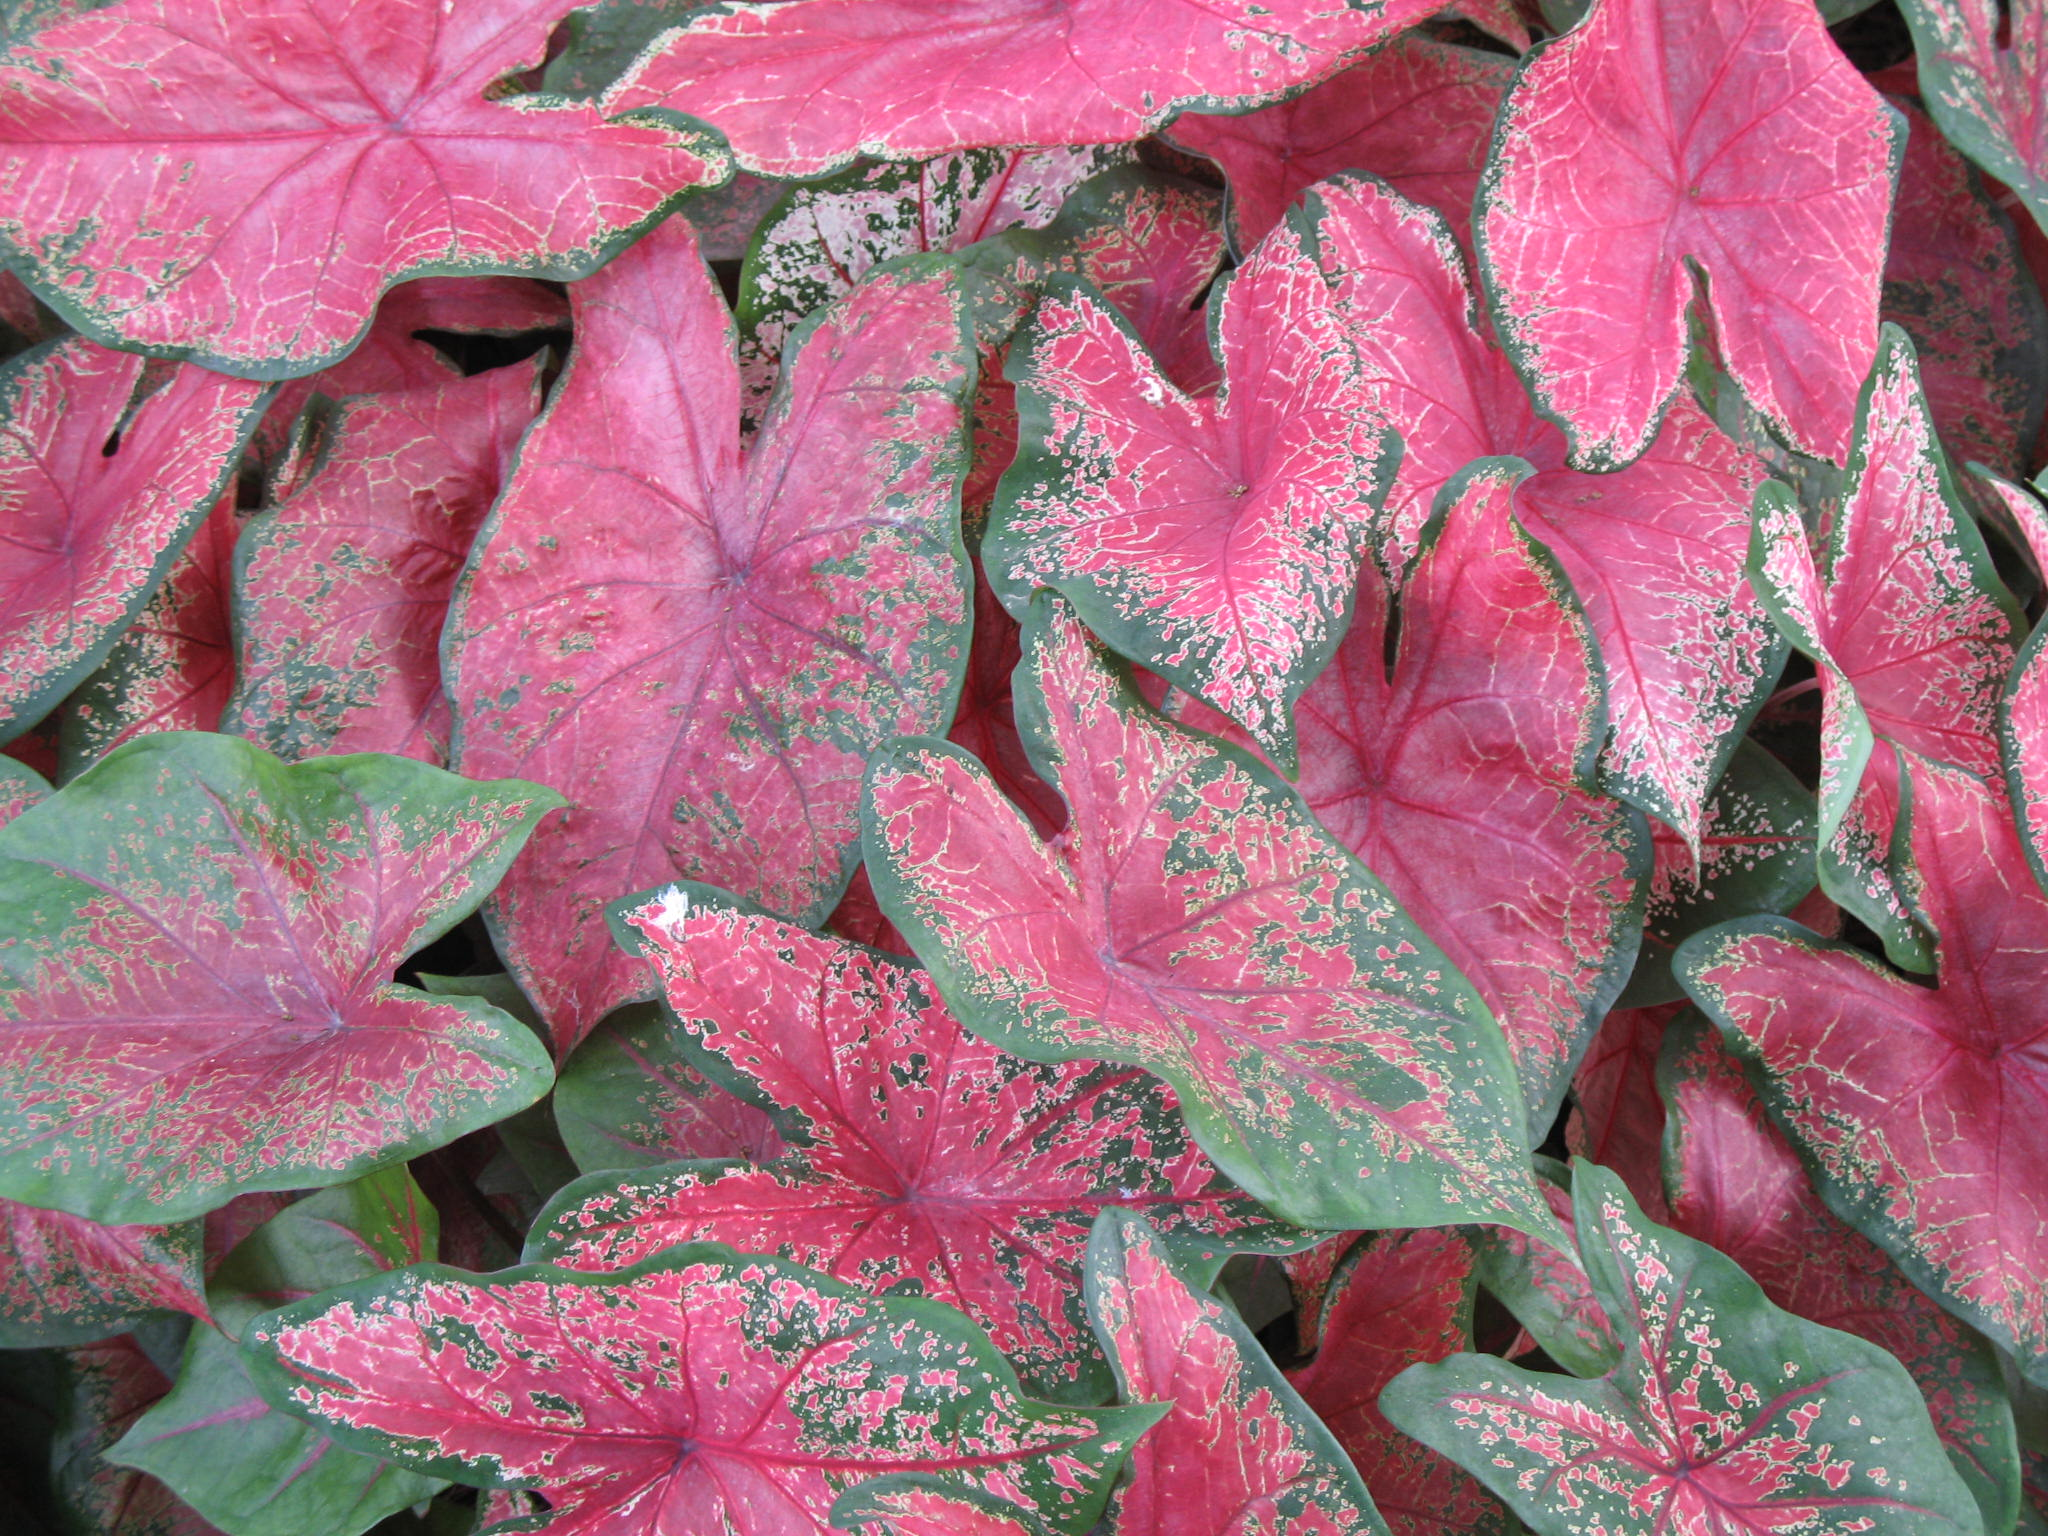 Caladium bicolor 'Tom Tom'   / Caladium bicolor 'Tom Tom'